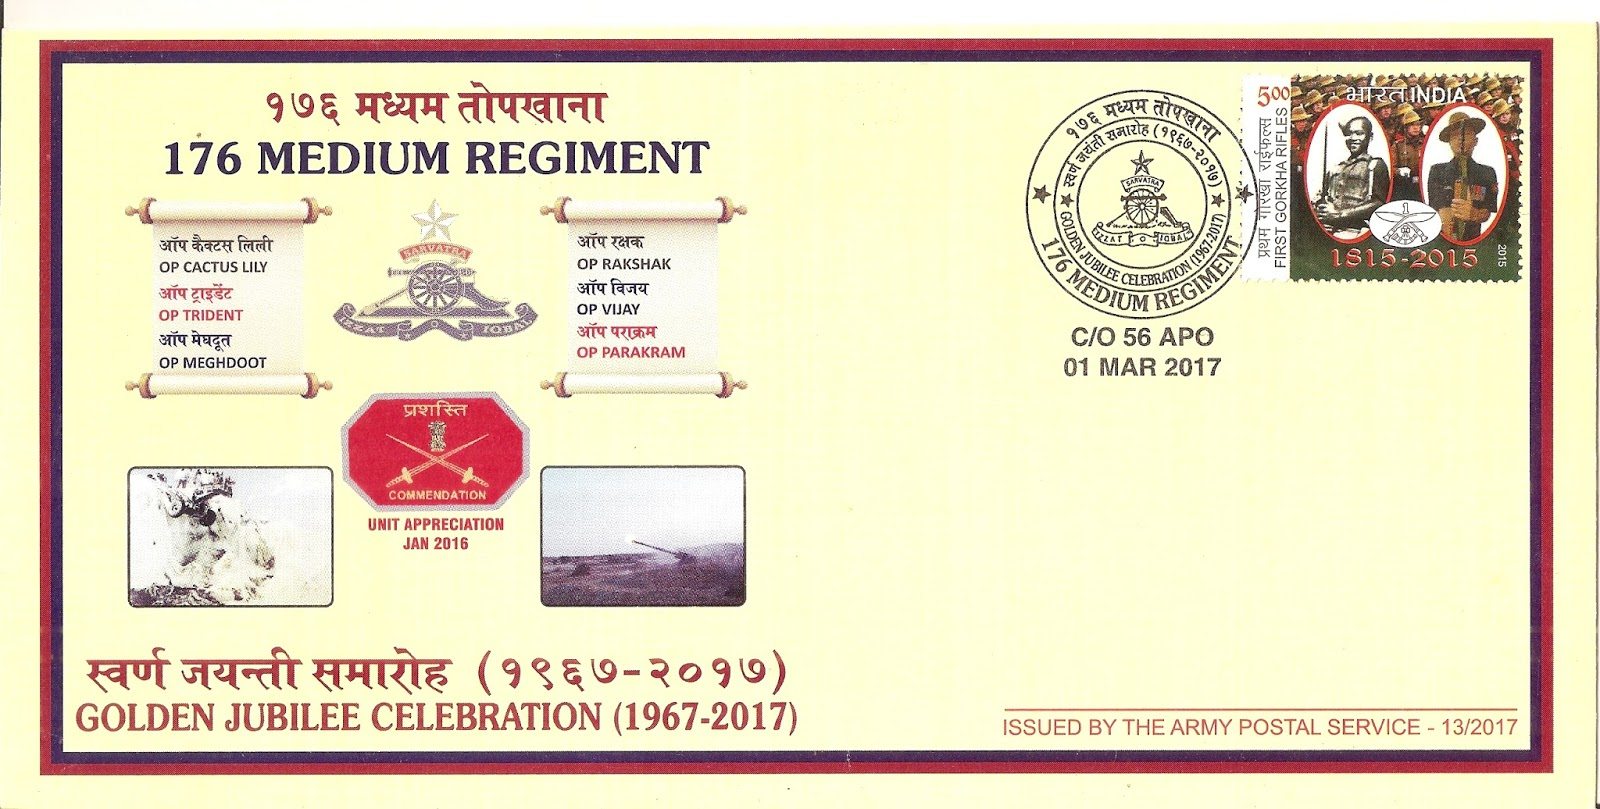 Coins and more 577 176 medium regiment golden jubilee 577 176 medium regiment golden jubilee celebrations 1967 2017 a special cover issued by 56 apo army post office on 01032017 kristyandbryce Choice Image